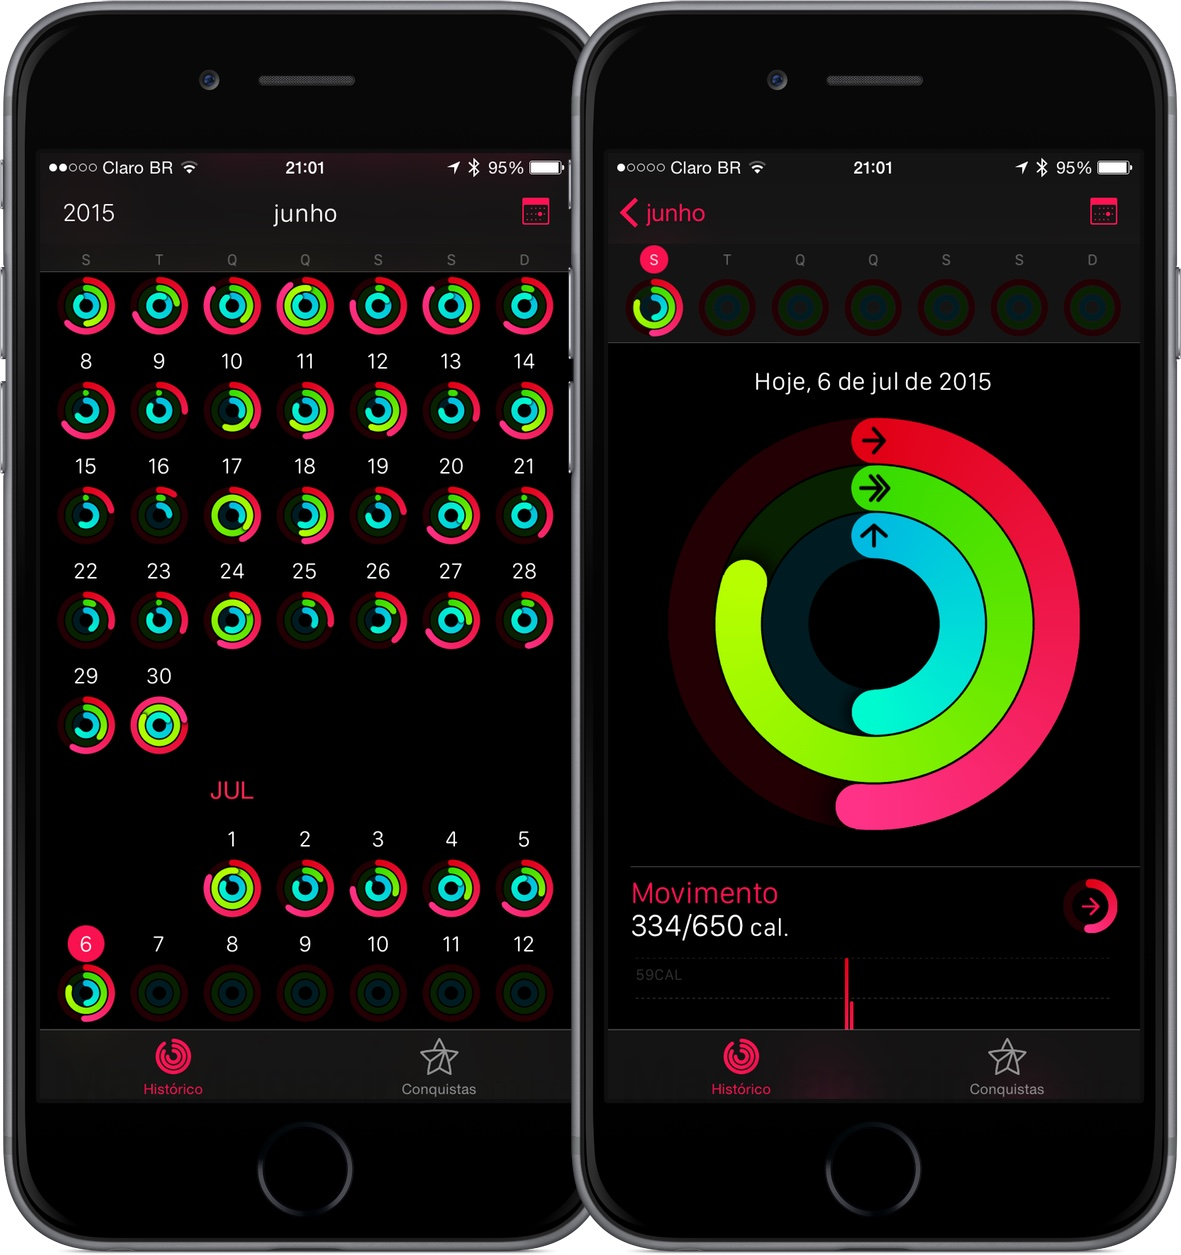 Review do Apple Watch - App Atividade no iPhone